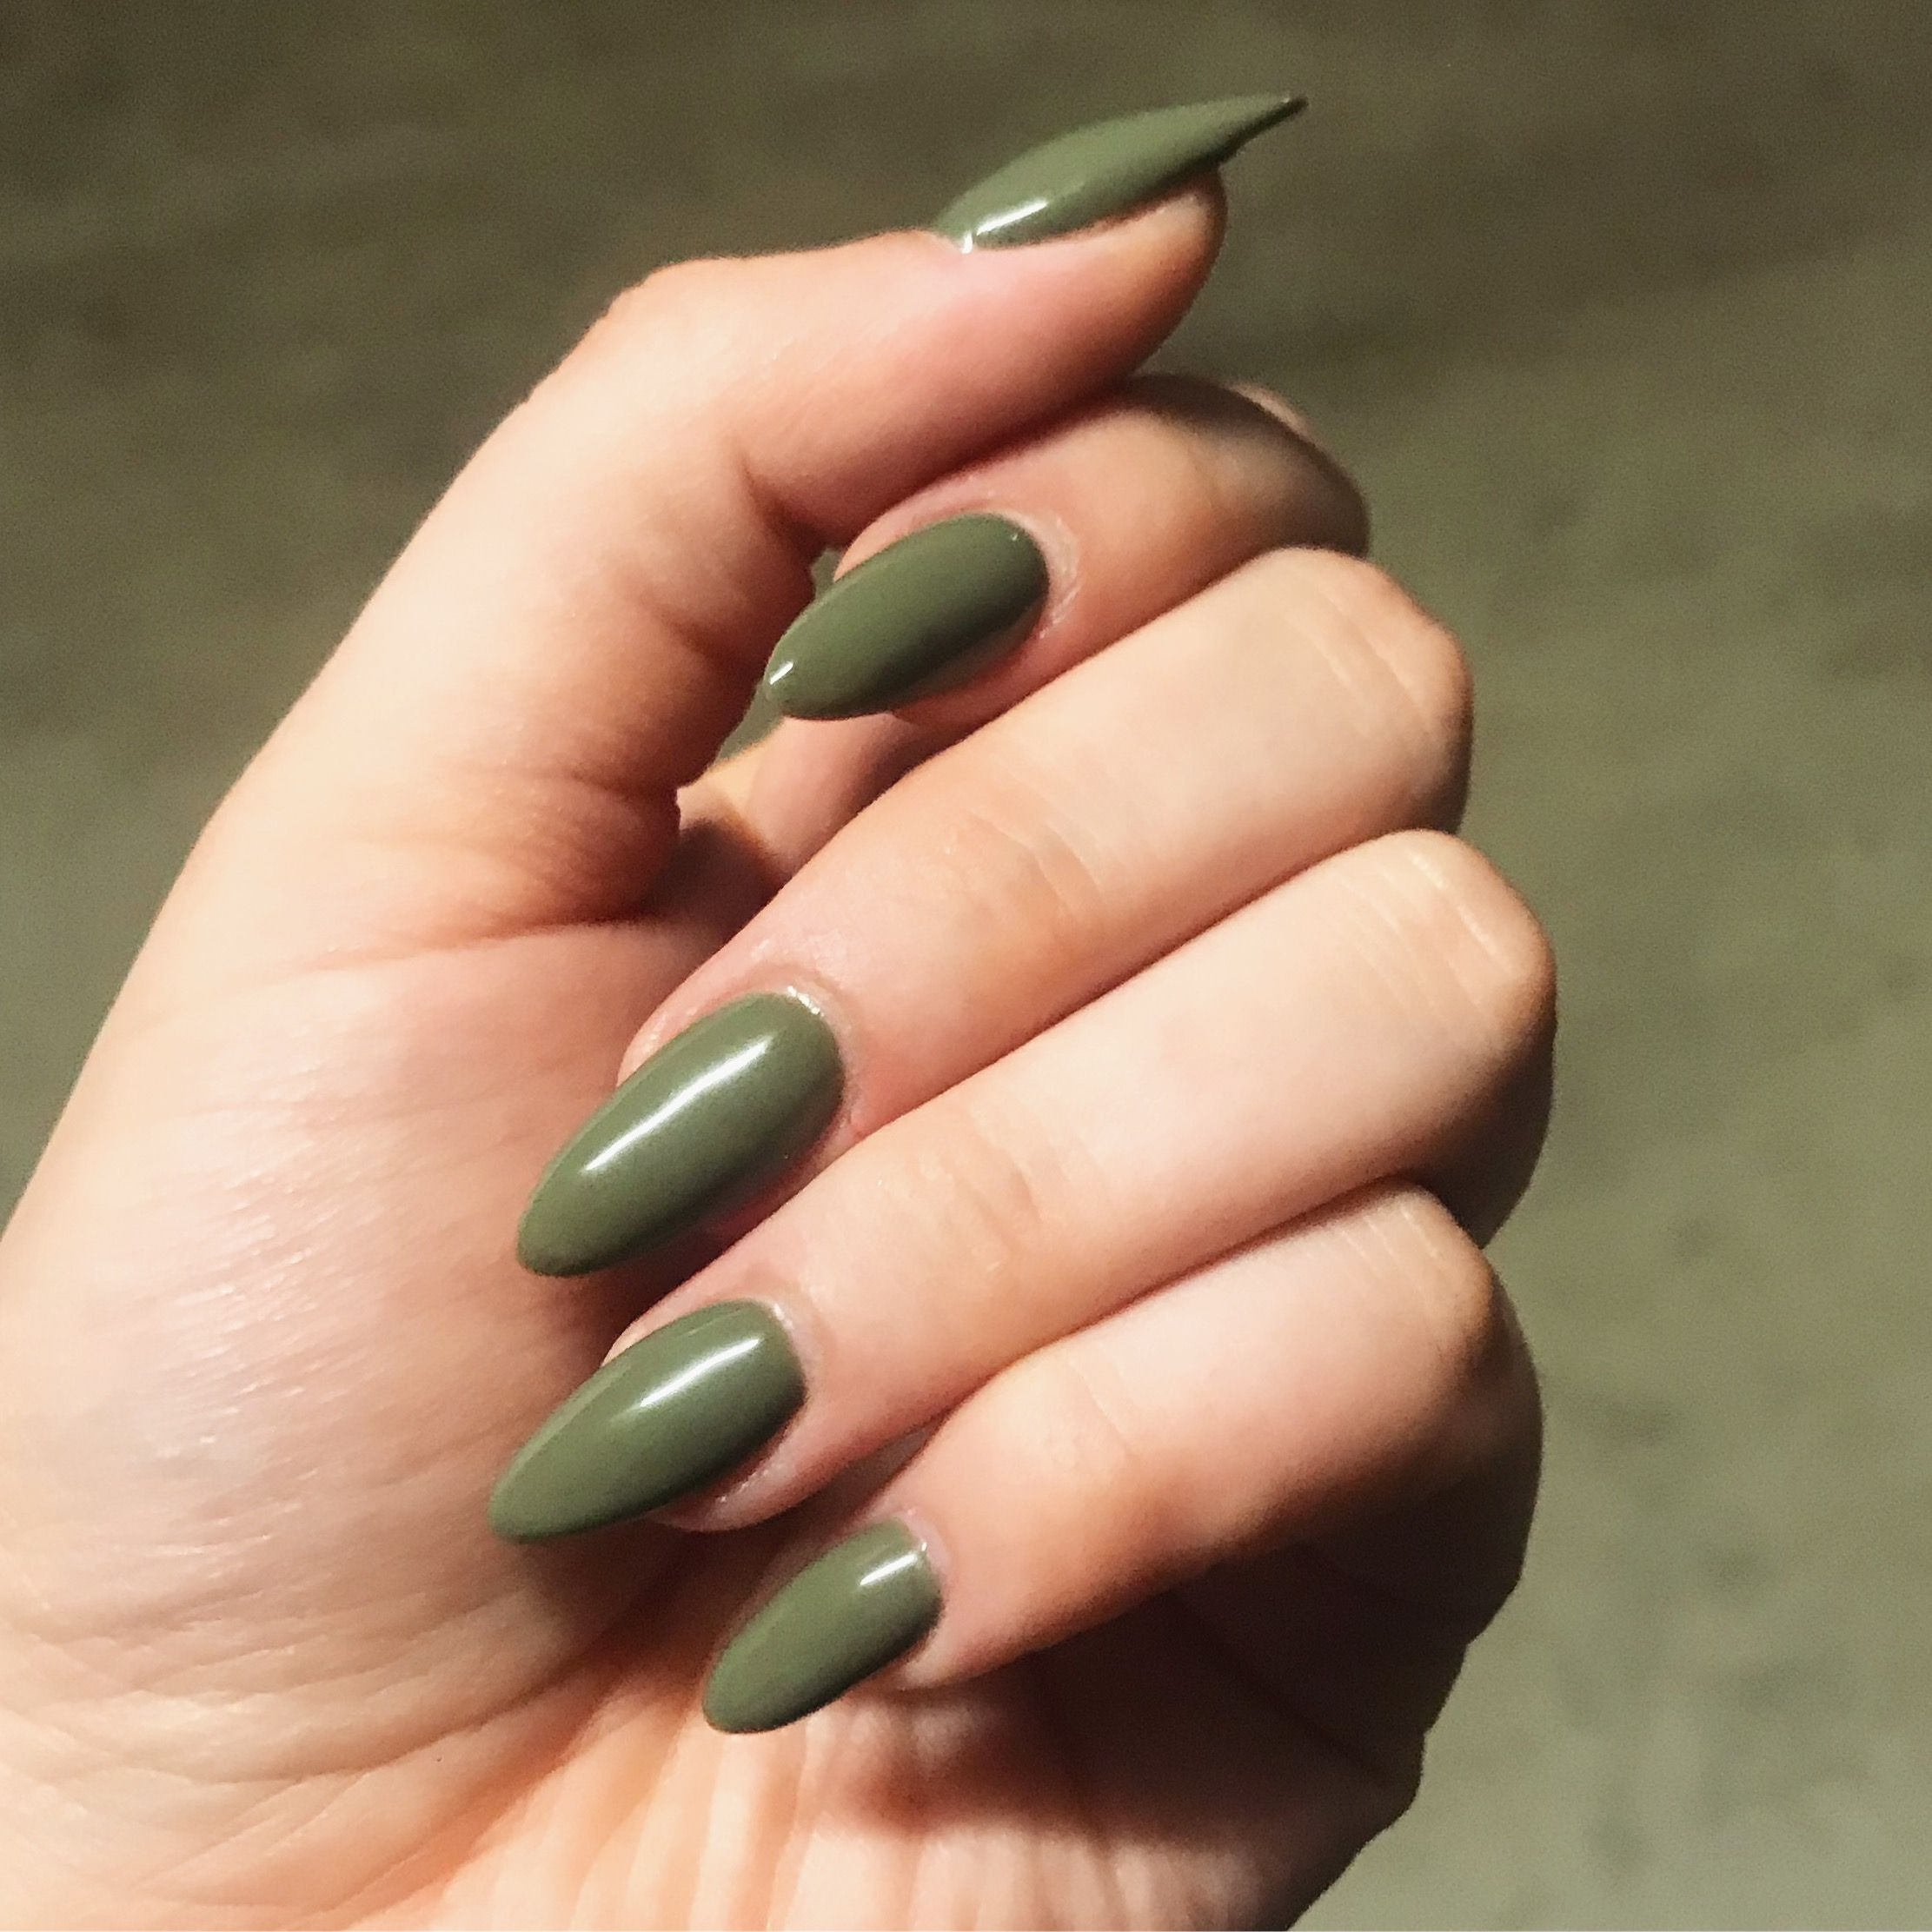 Olive Green Almond Shaped Acrylic Nails Green Acrylic Nails Olive Nails Acrylic Nail Shapes